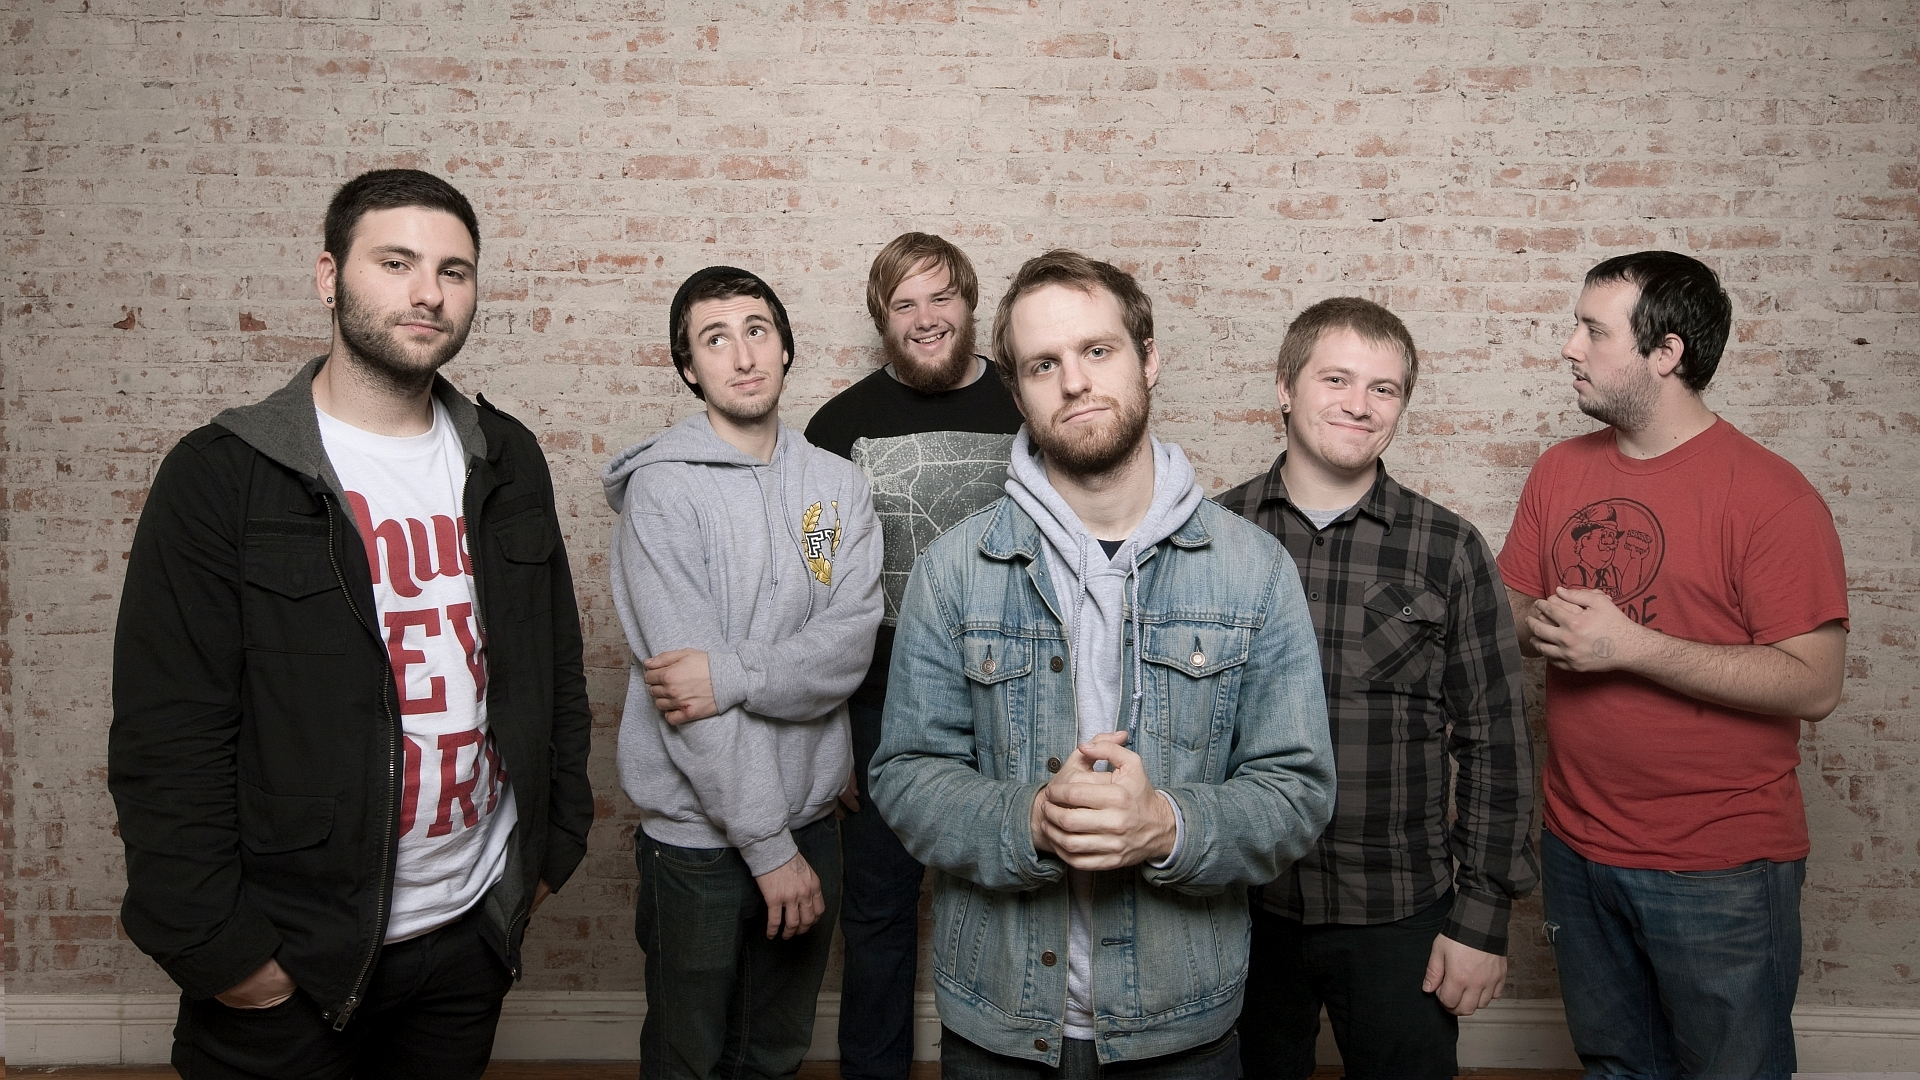 Download Wallpaper 1920x1080 the wonder years, band, wall, clothes, bristle Full HD 1080p HD